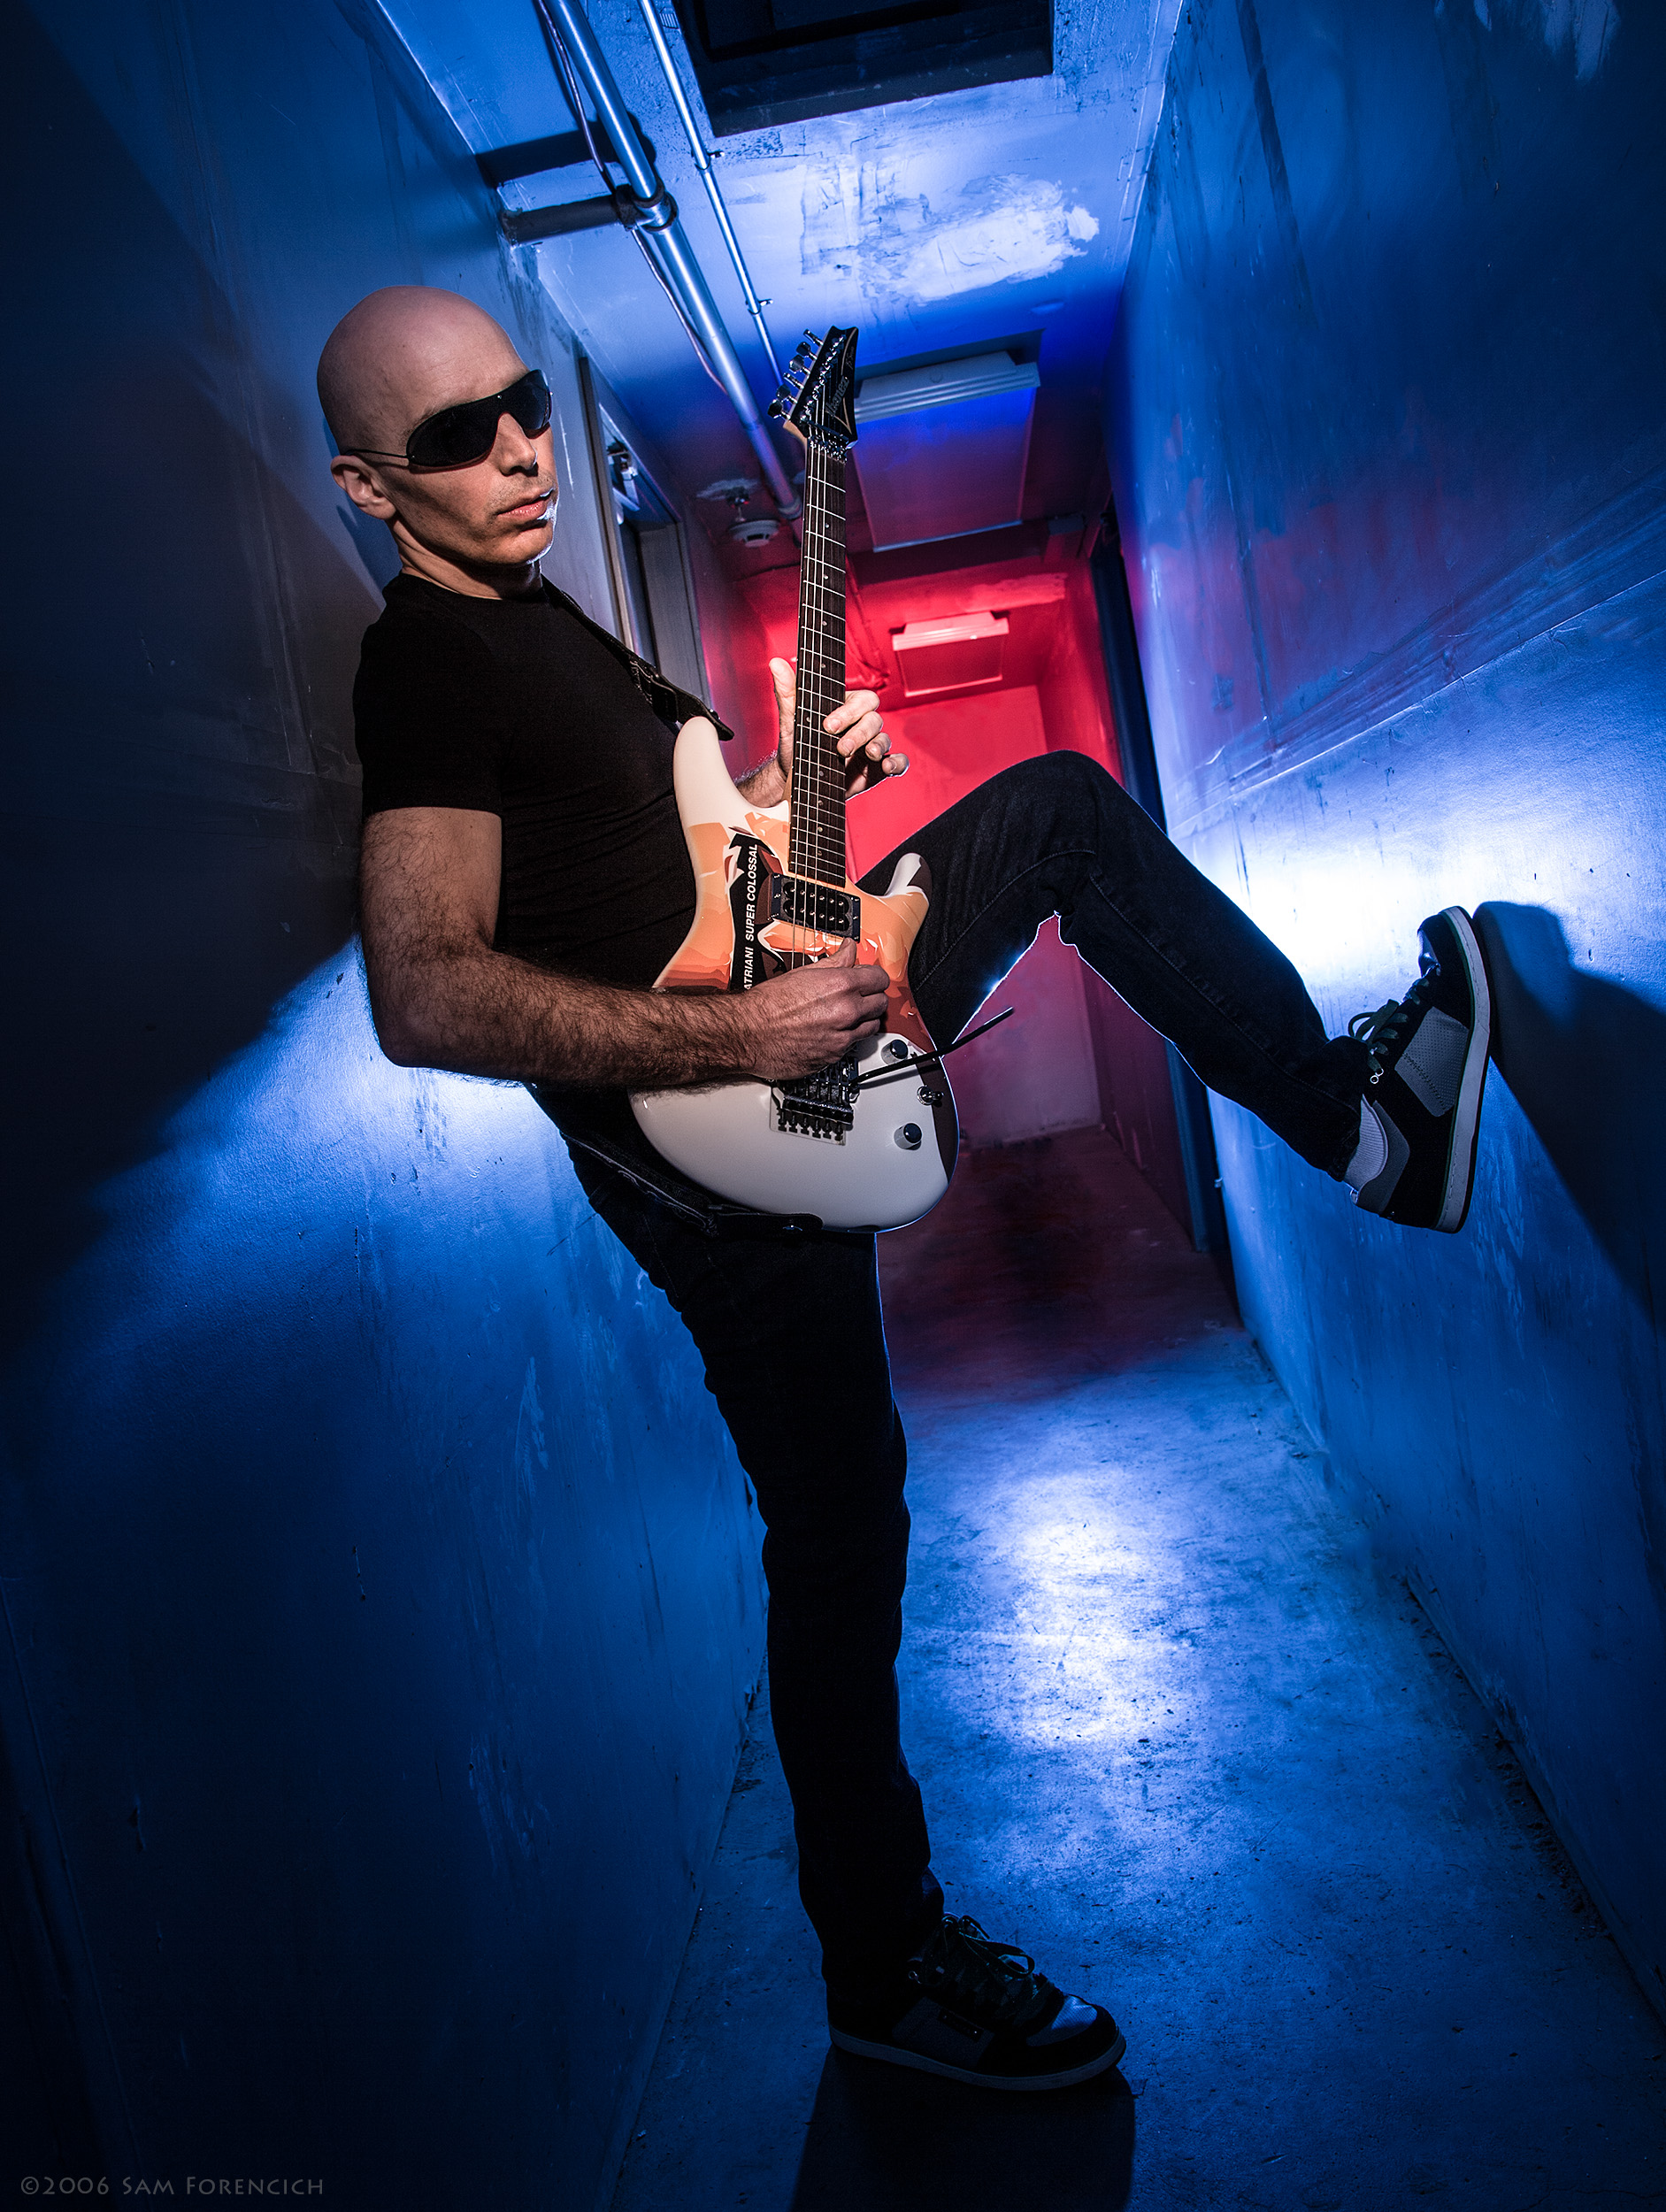 May 2009,Portland, Oregon - Backstage portrait of Joe Satriani at the Roseland Theater - 2006 Super Colossal Tour ©2006 Sam Forencich